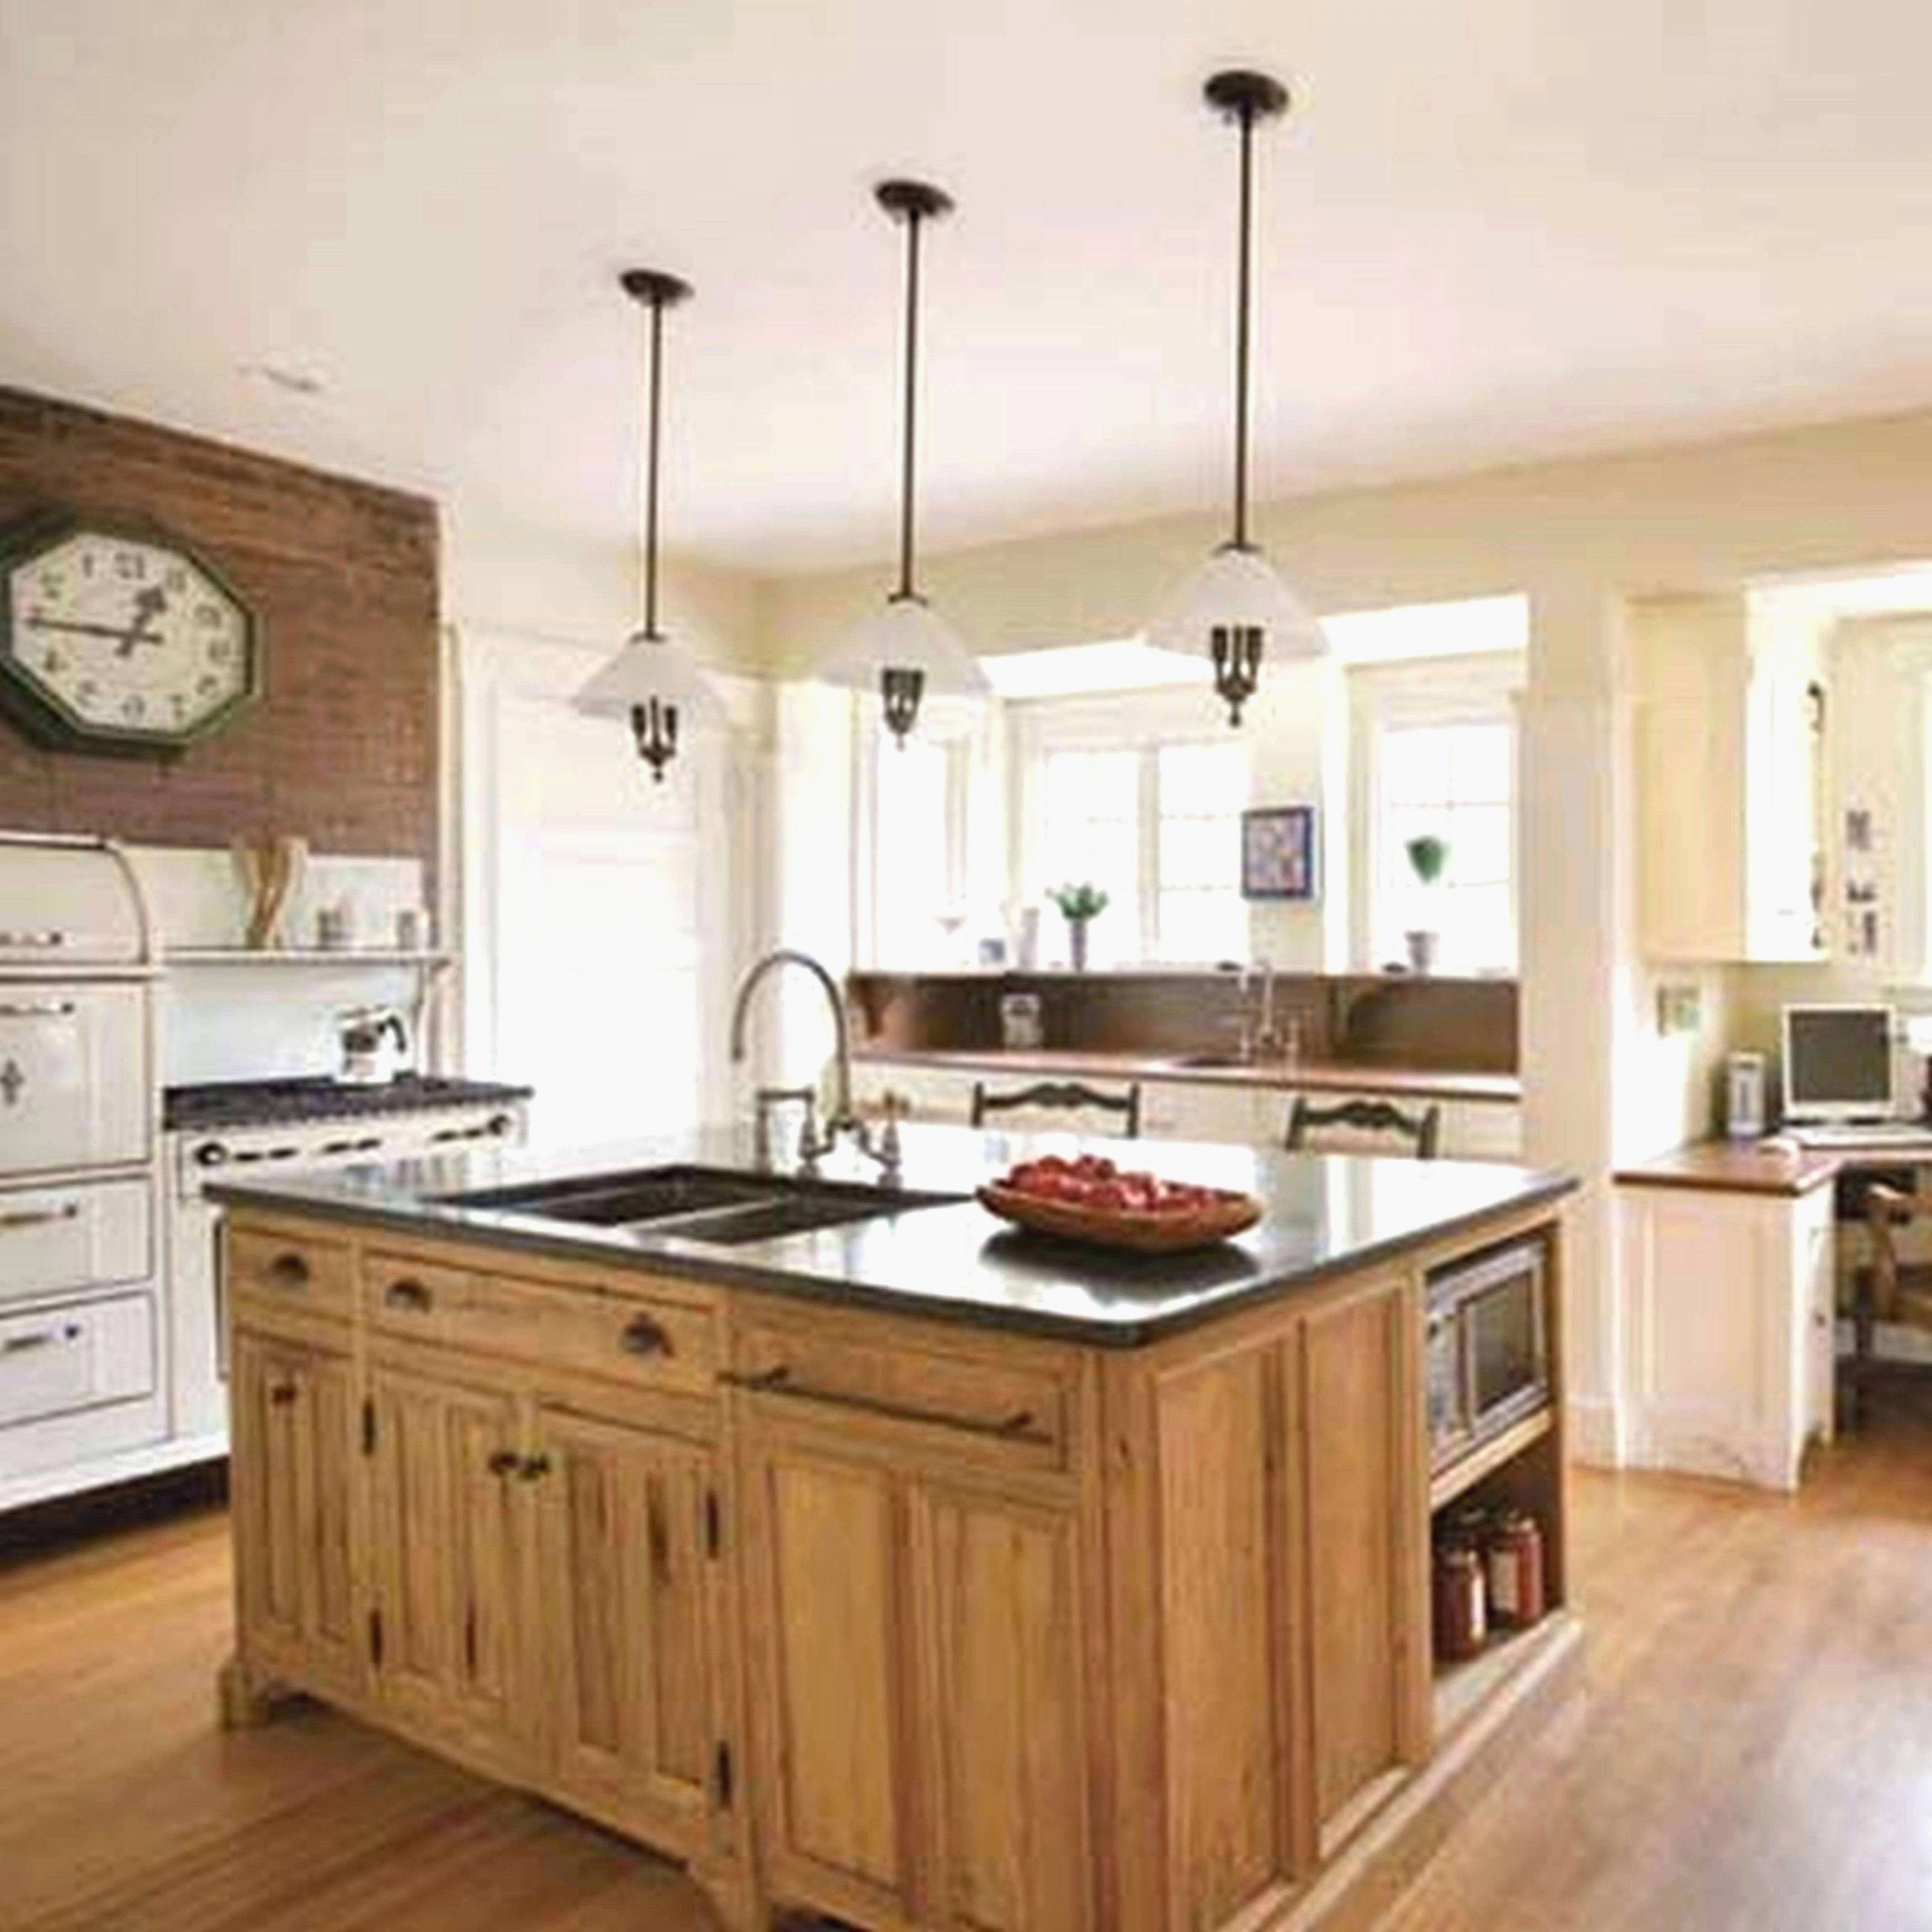 home depot hardwood floor installation reviews of 10 best of kitchen cabinet stain home depot www princesofkingsroad pertaining to cabinet stain home depot 2018